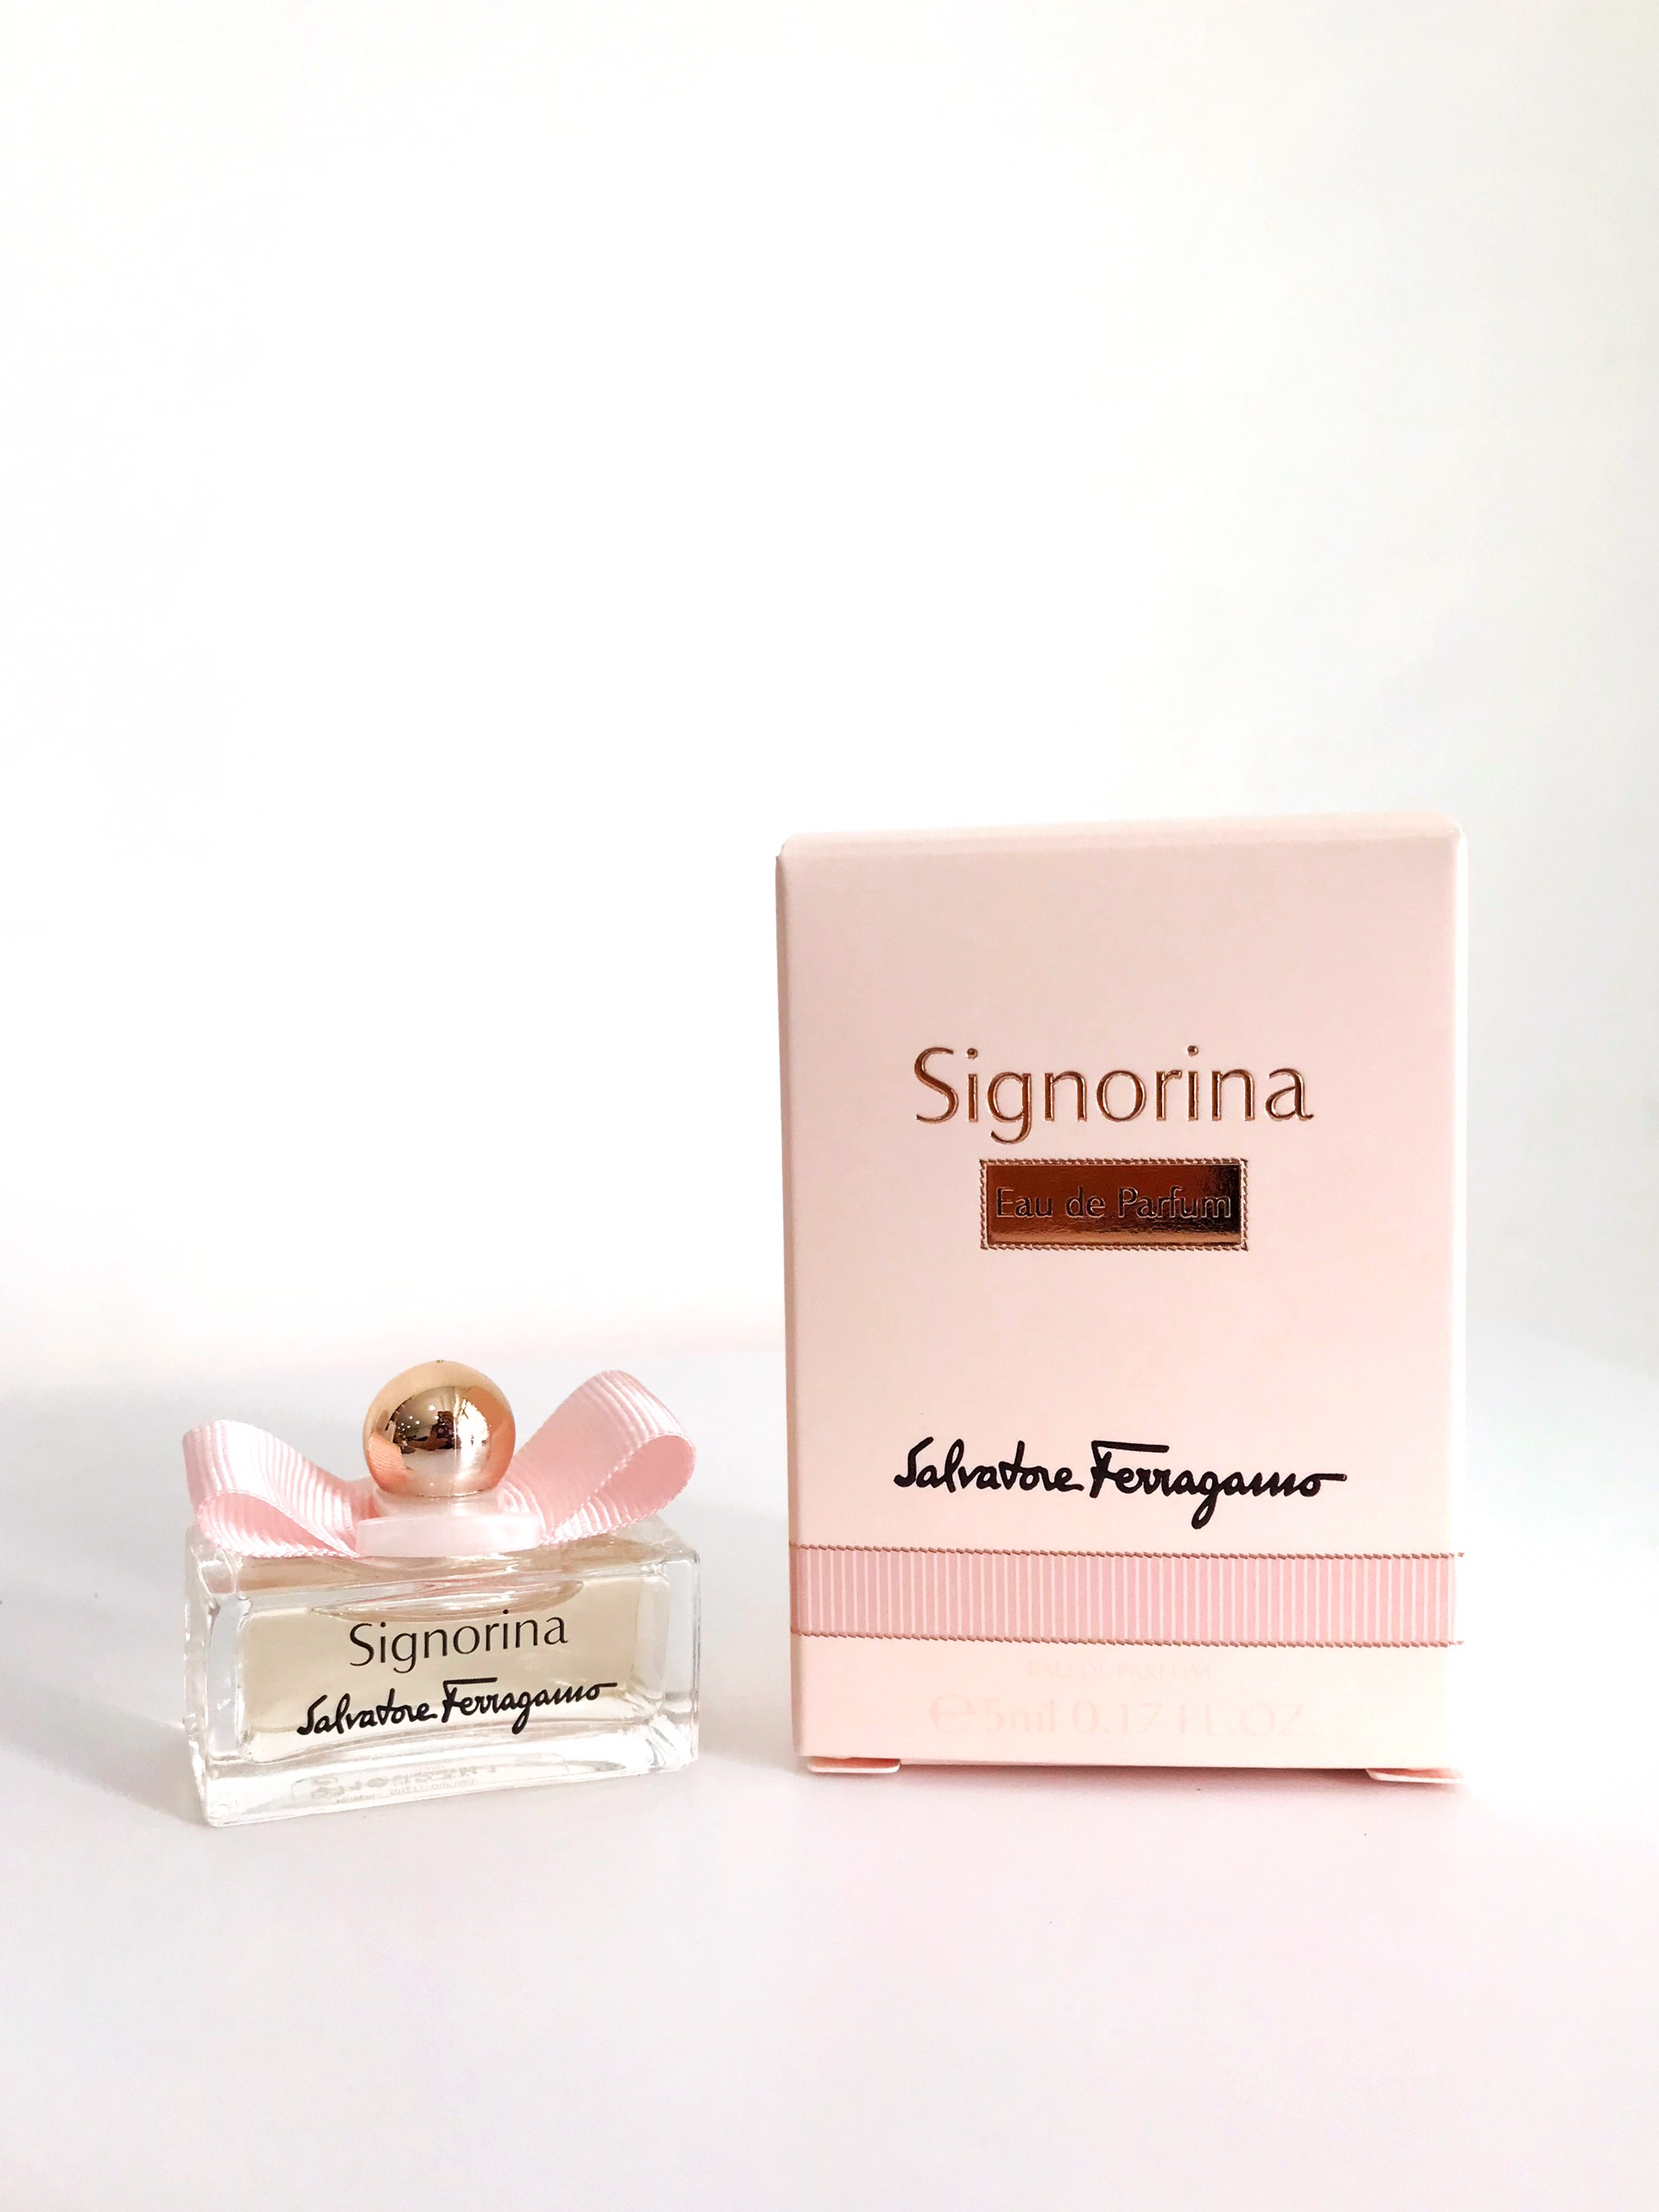 Salvatore Ferragamo Signorina EDP mini 5ml